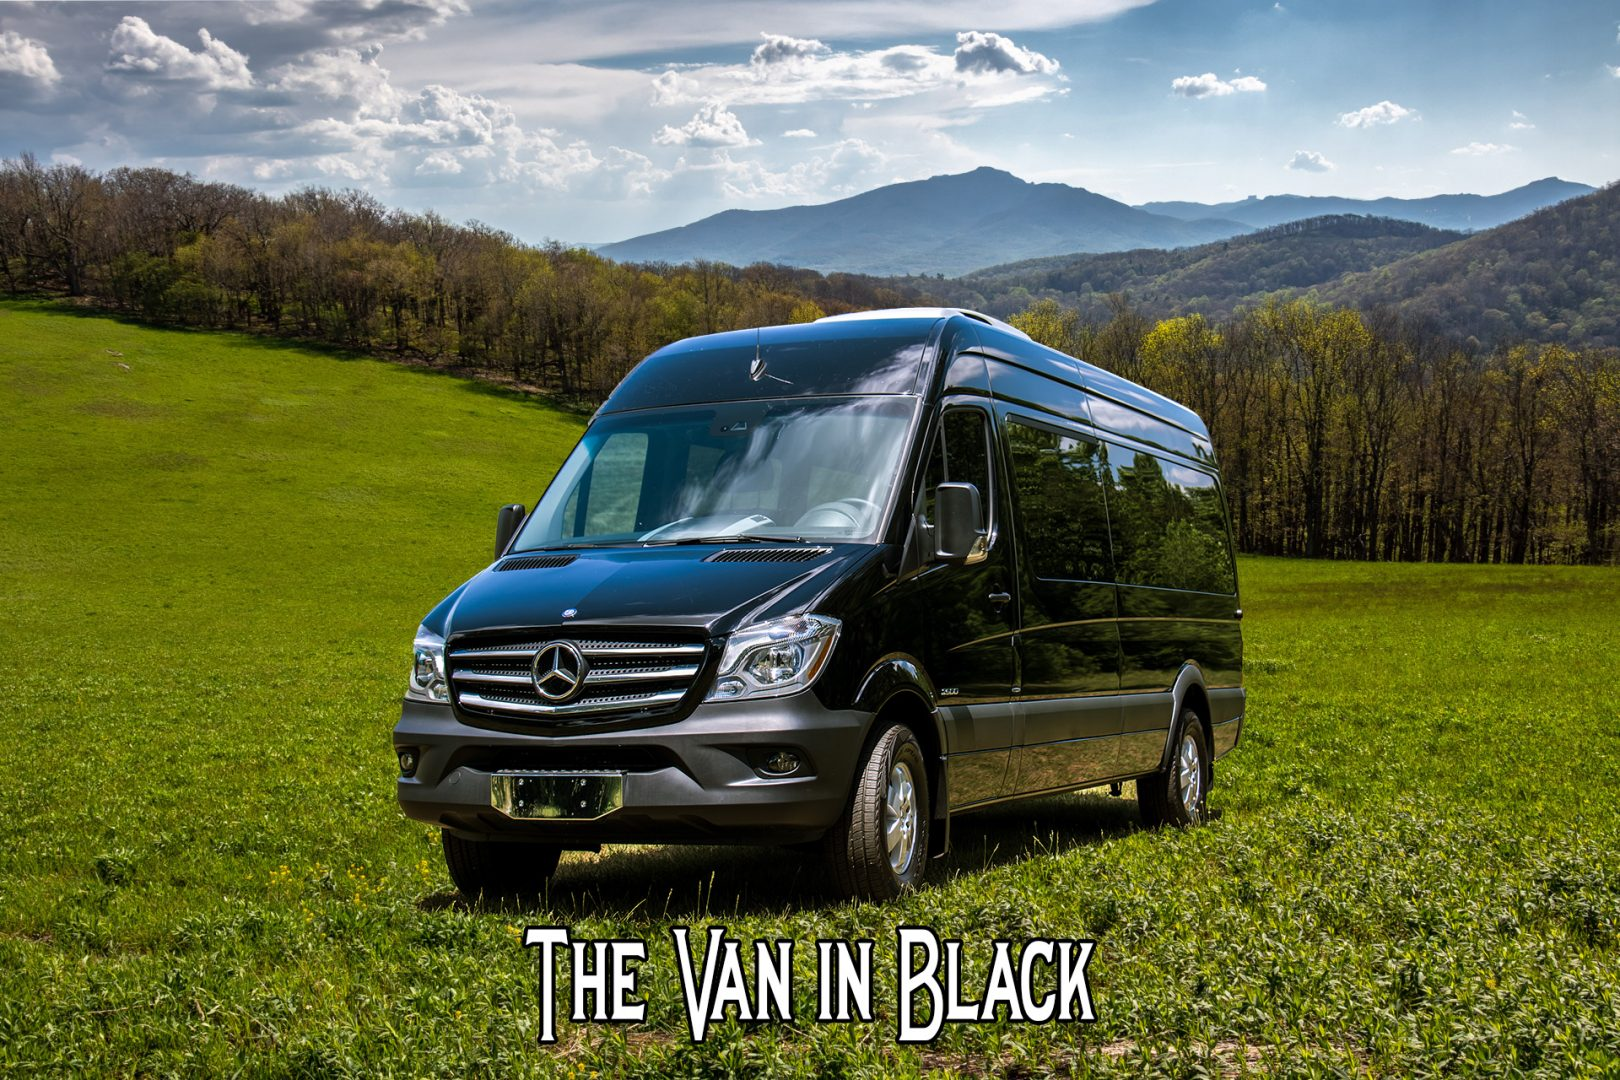 Van in Black